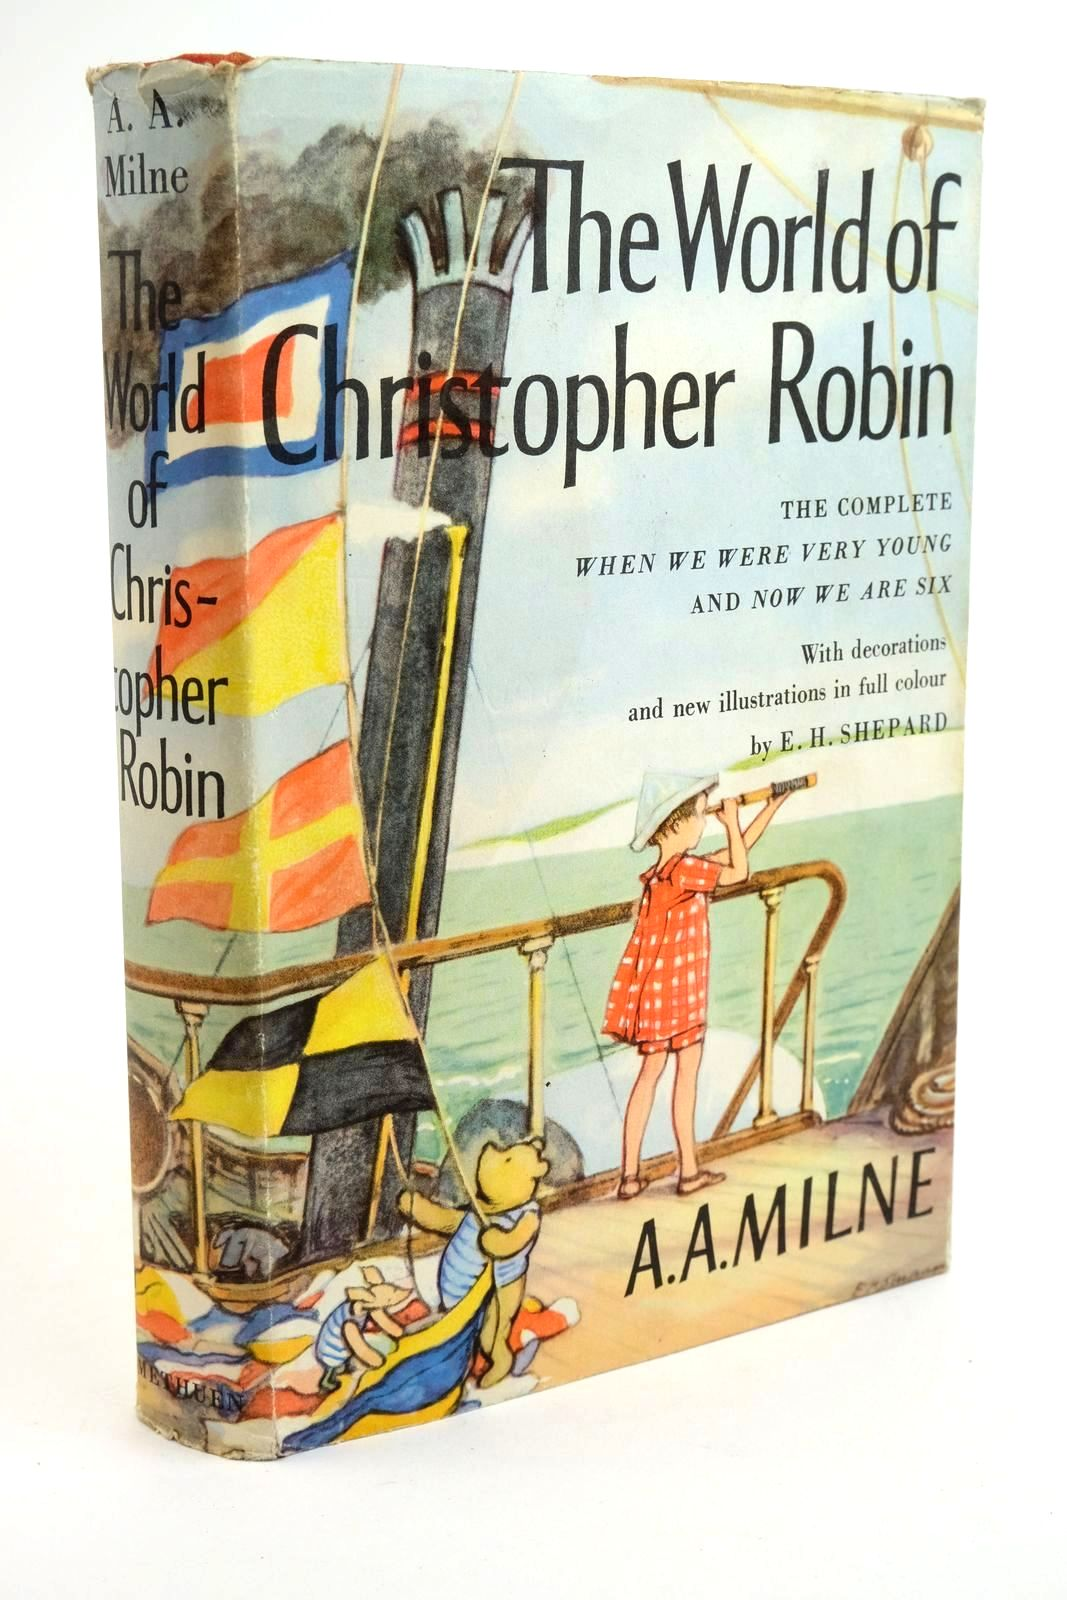 Photo of THE WORLD OF CHRISTOPHER ROBIN written by Milne, A.A. illustrated by Shepard, E.H. published by Methuen & Co. Ltd. (STOCK CODE: 1321779)  for sale by Stella & Rose's Books